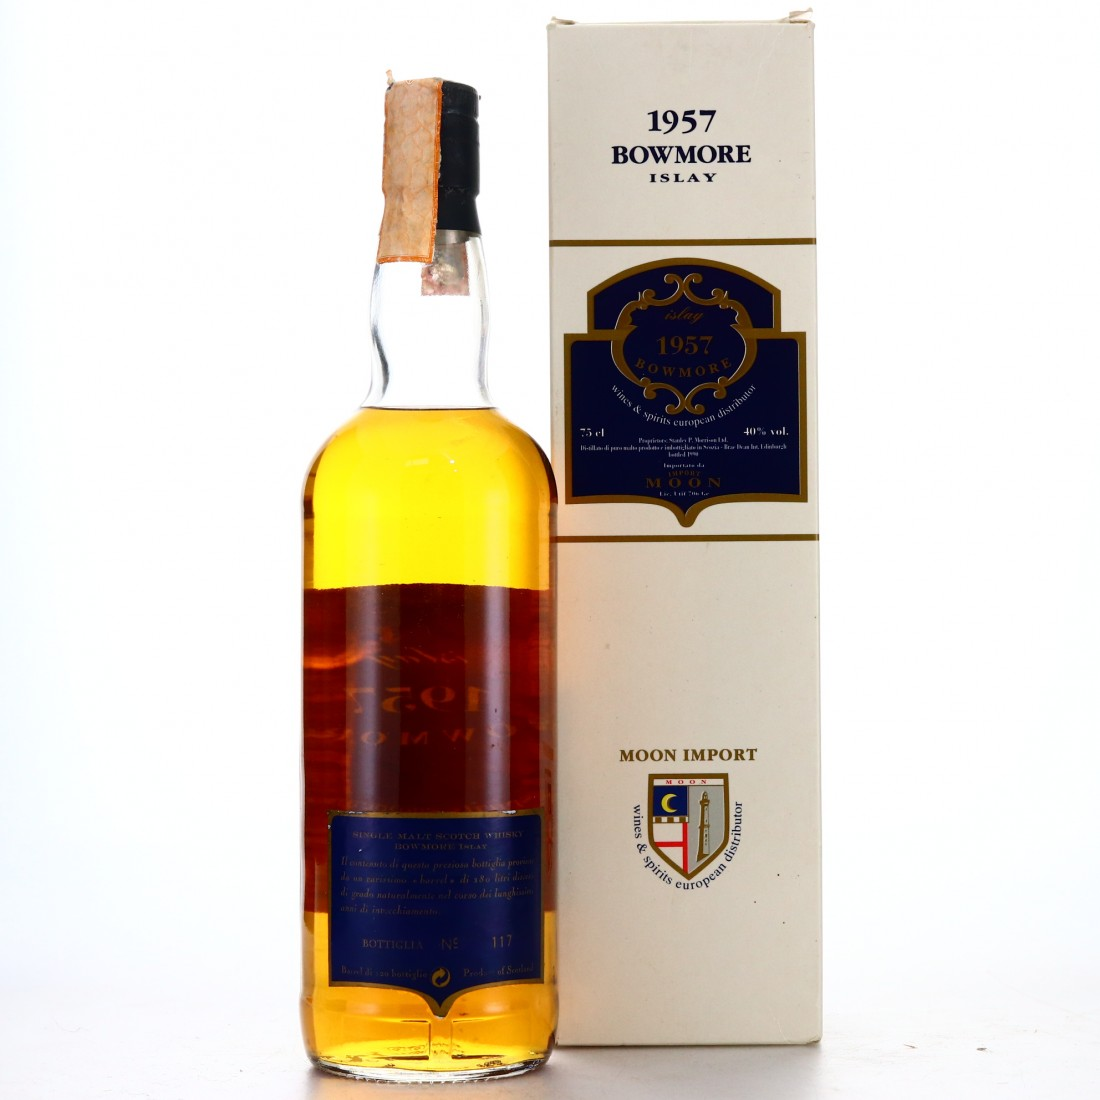 Bowmore 1957 Moon Import / Crest Label